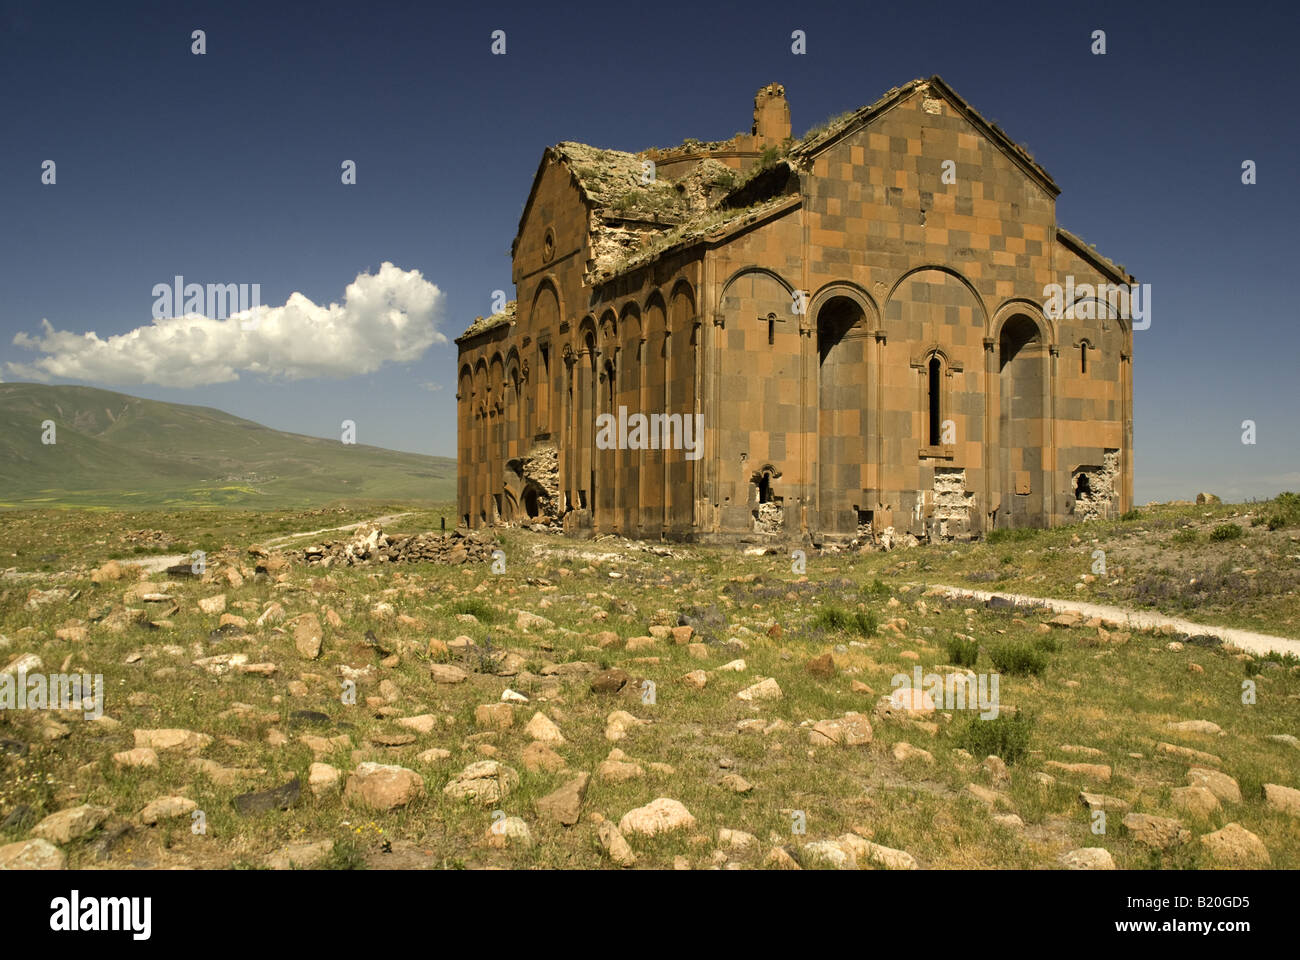 Remains of Great Cathedral at Ani, ruined capital of Armenian Kingdom on eastern Turkey border with Armenia - Stock Image